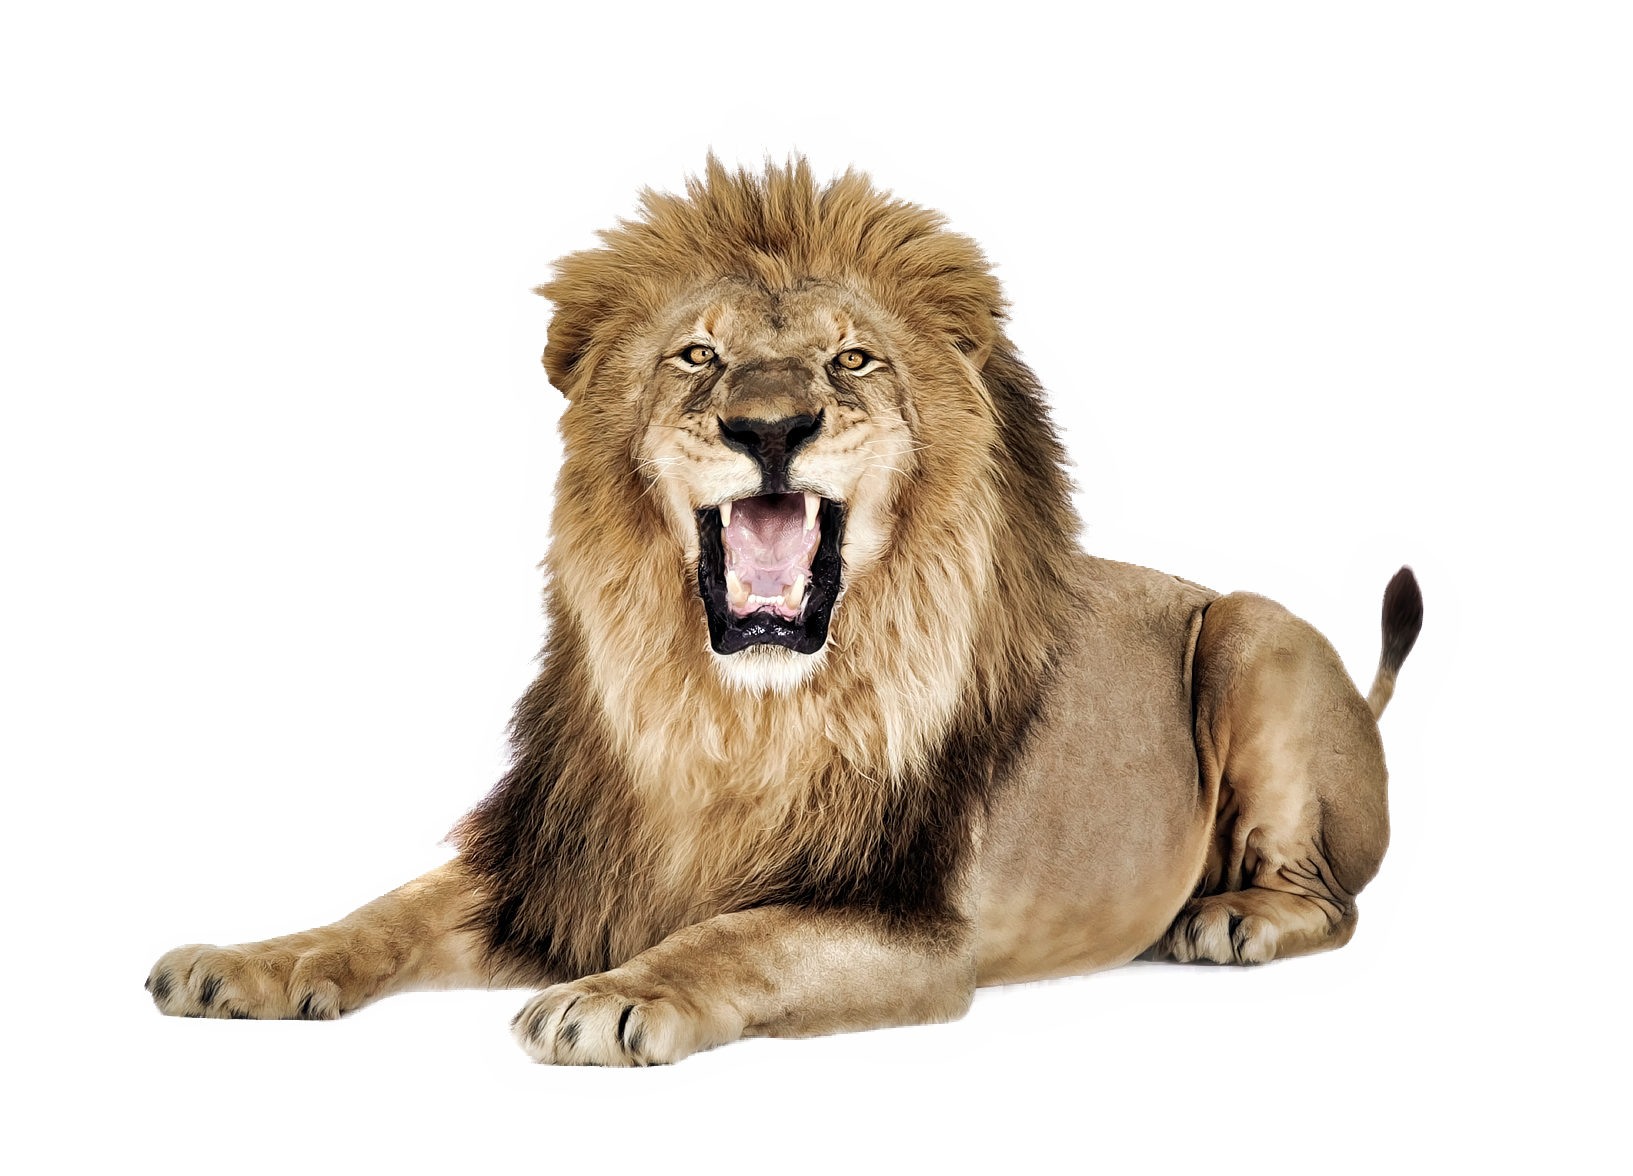 Grab and download Lion PNG Image Without Background